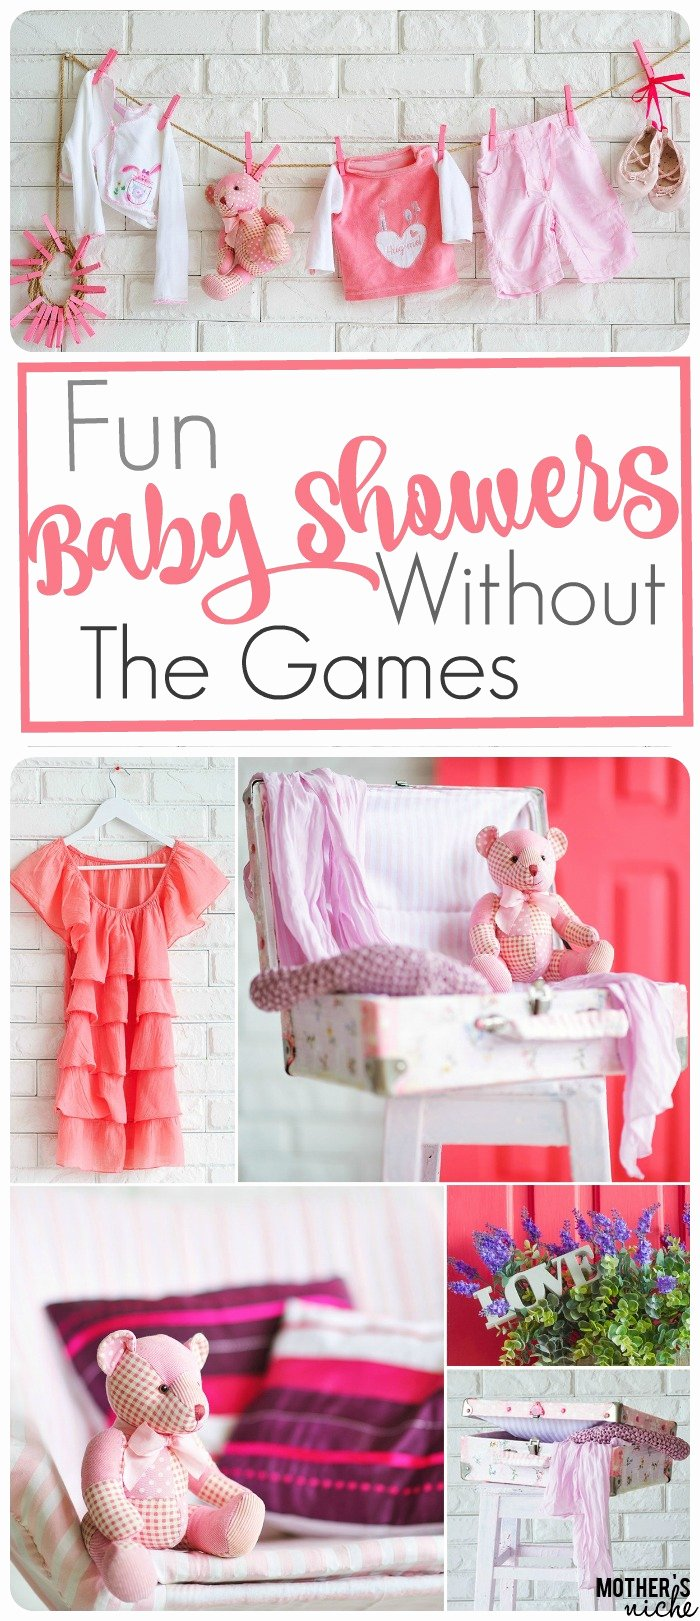 Free Baby Shower Decorations Awesome Non Game Baby Shower Ideas